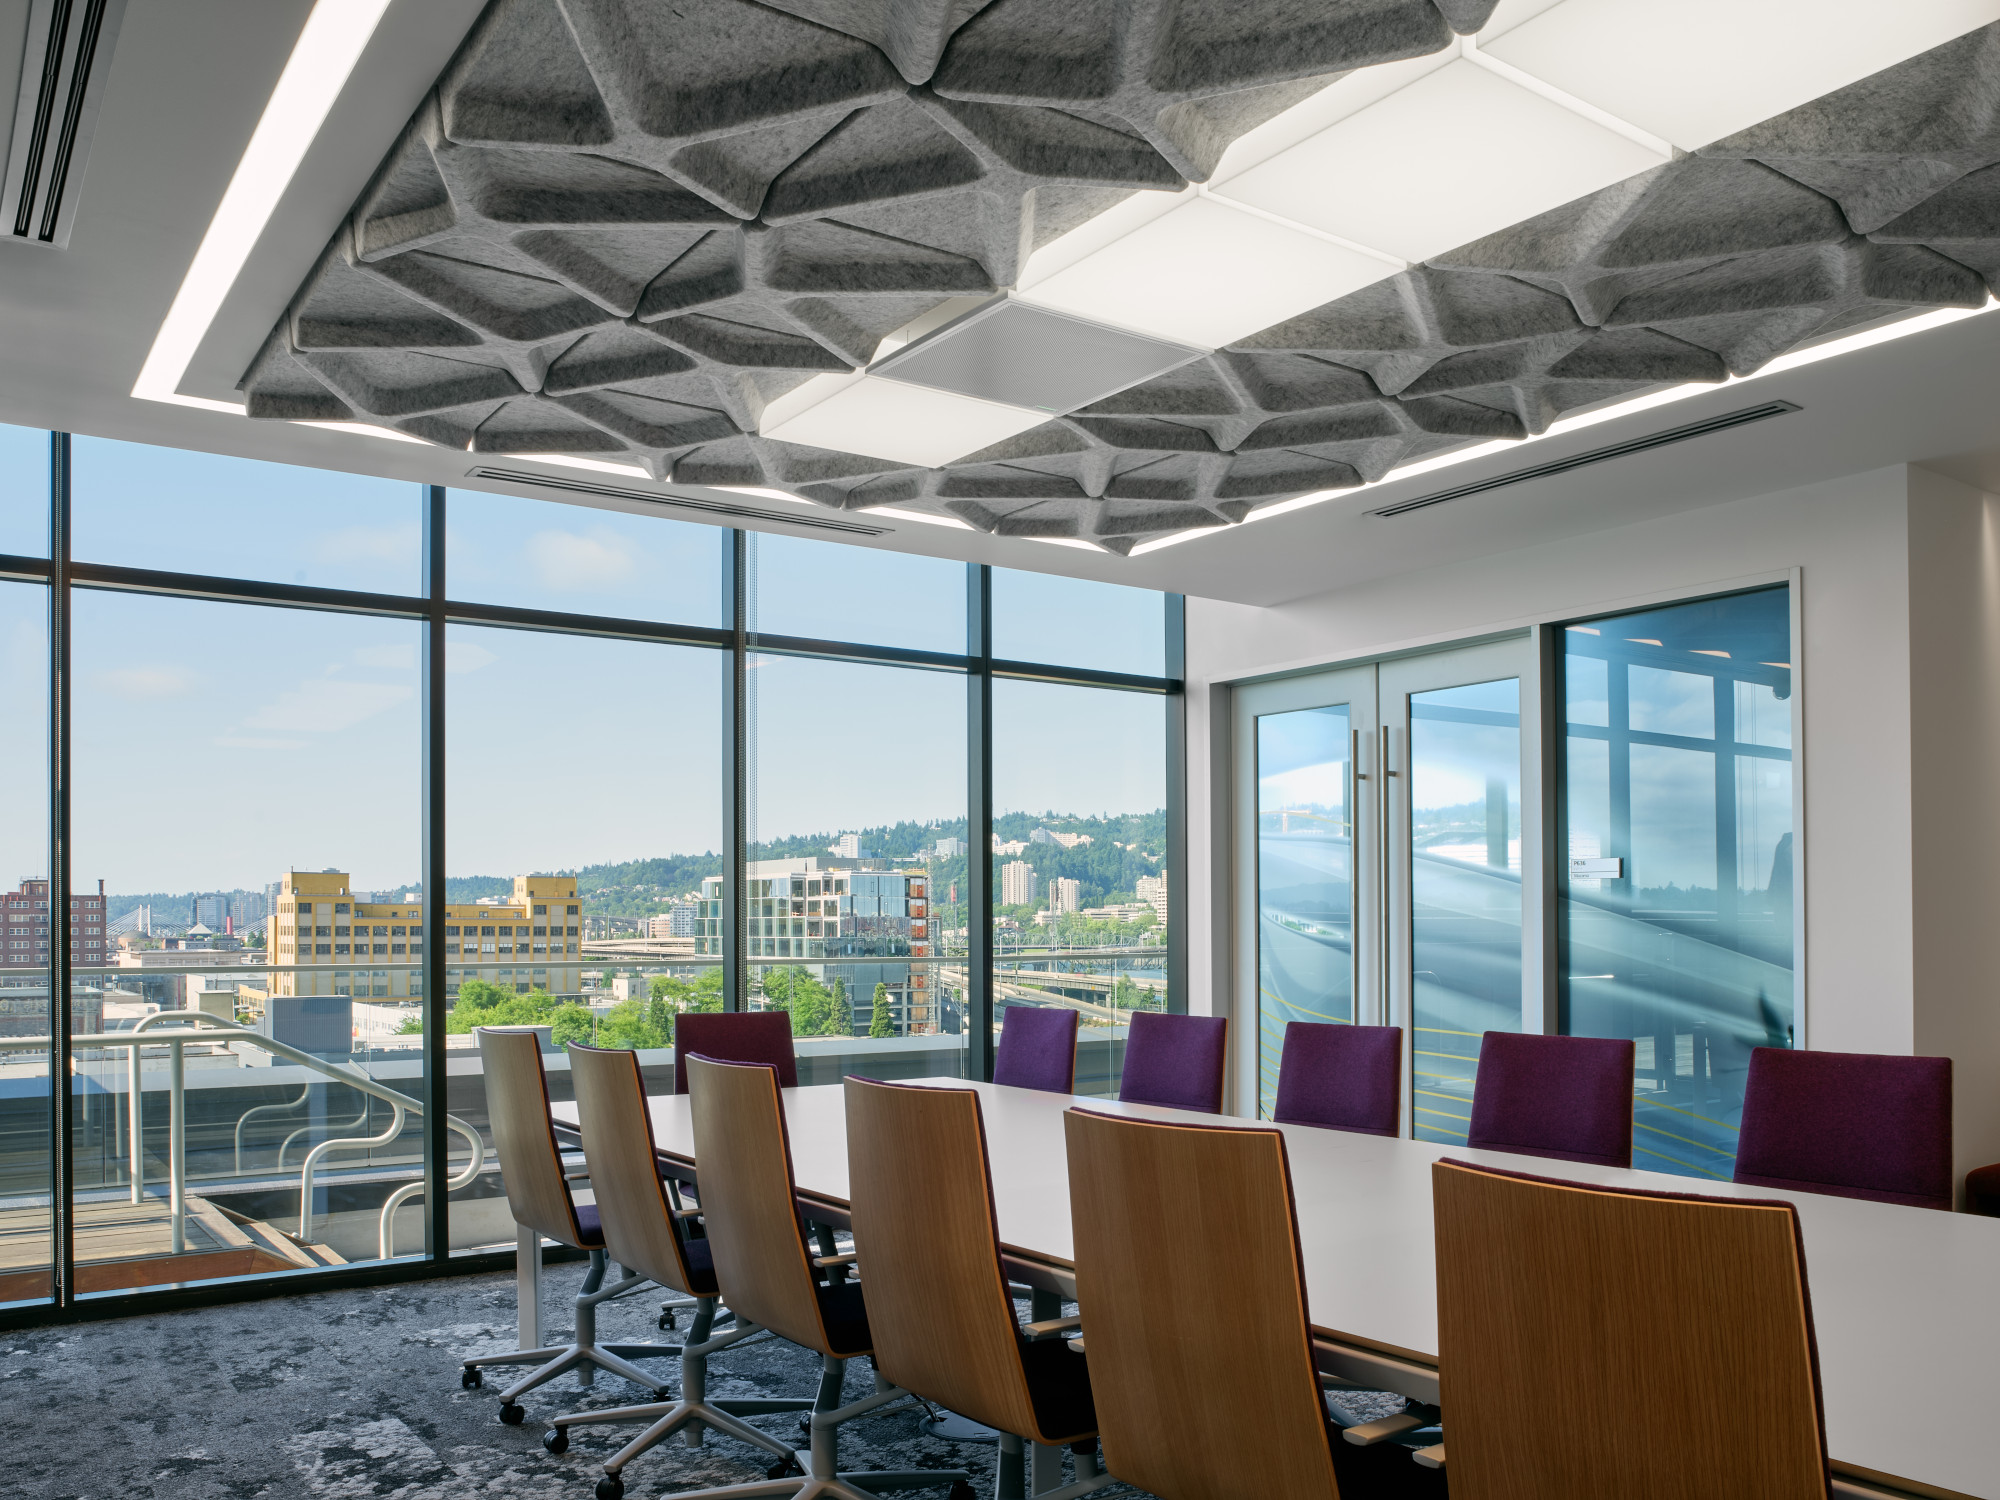 Office interior at Autodesk Portland